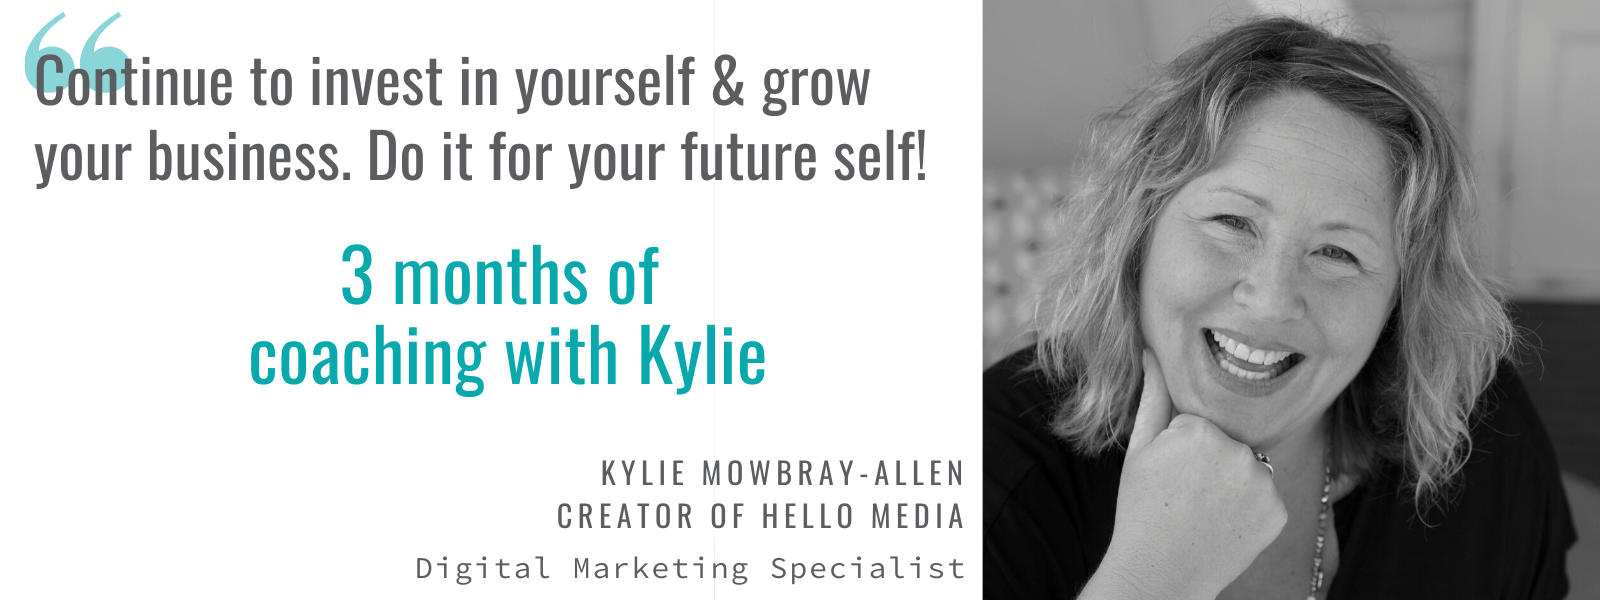 3 months of business coaching with Kylie Mowbray-Allen Digital Marketing Specialist